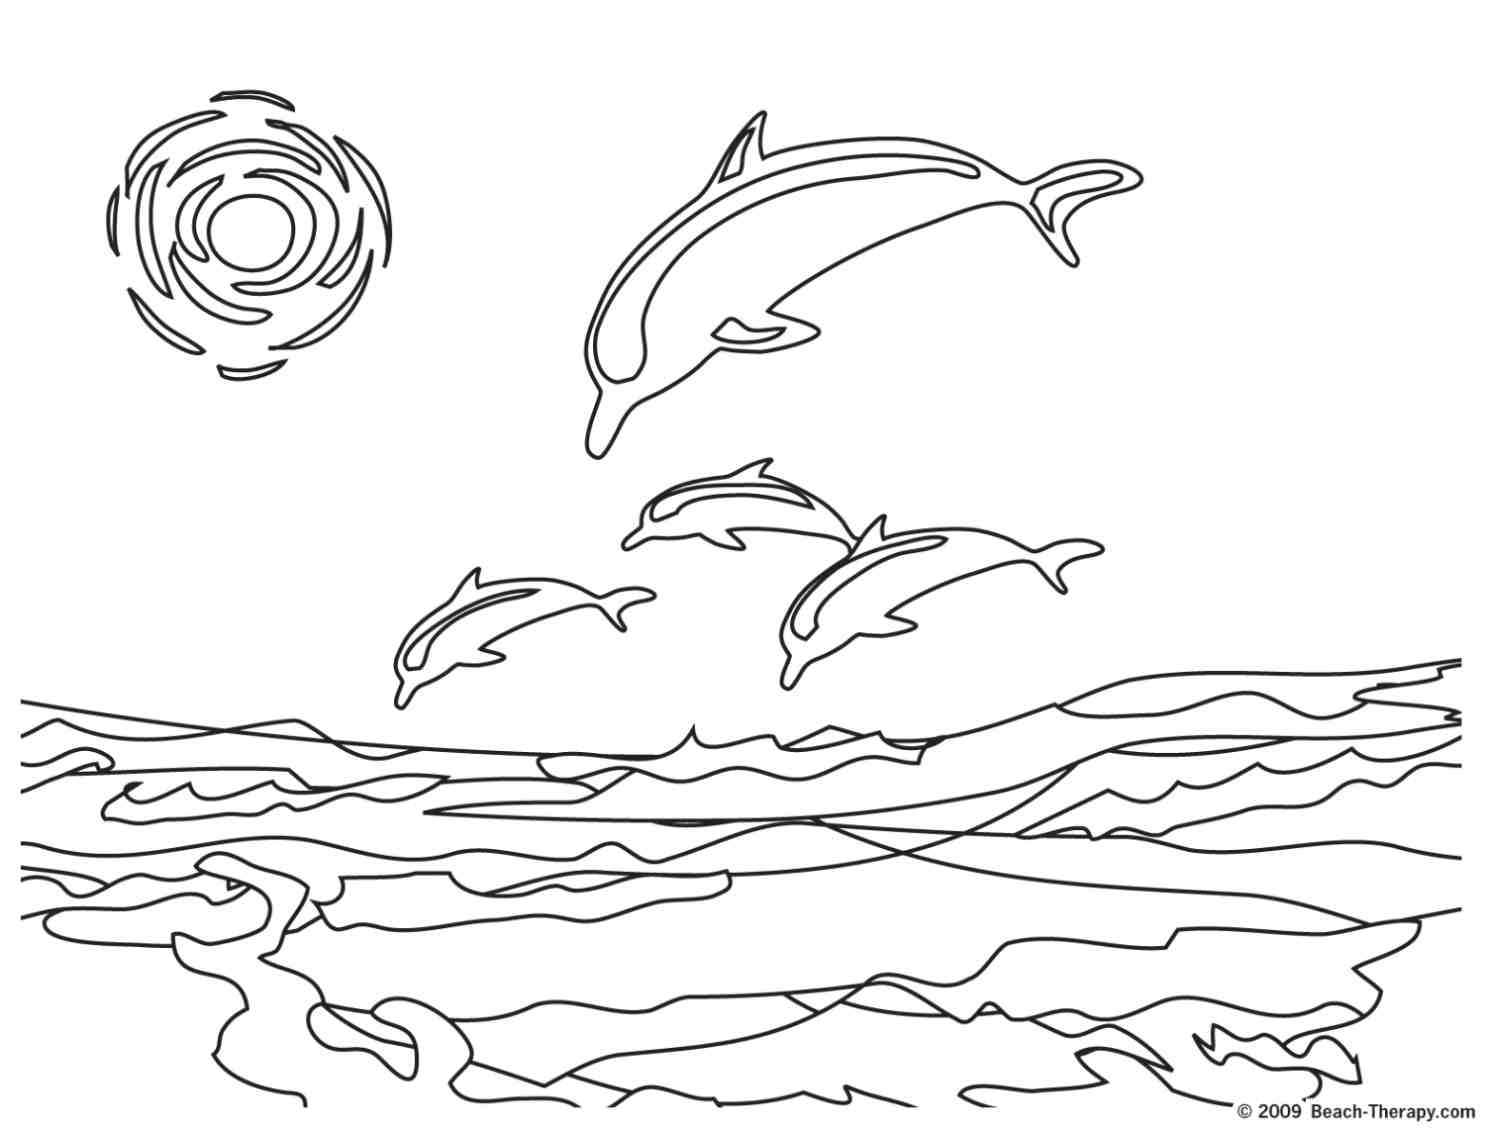 beach coloring pages 6 beach coloring pages 7 beach coloring pages 8